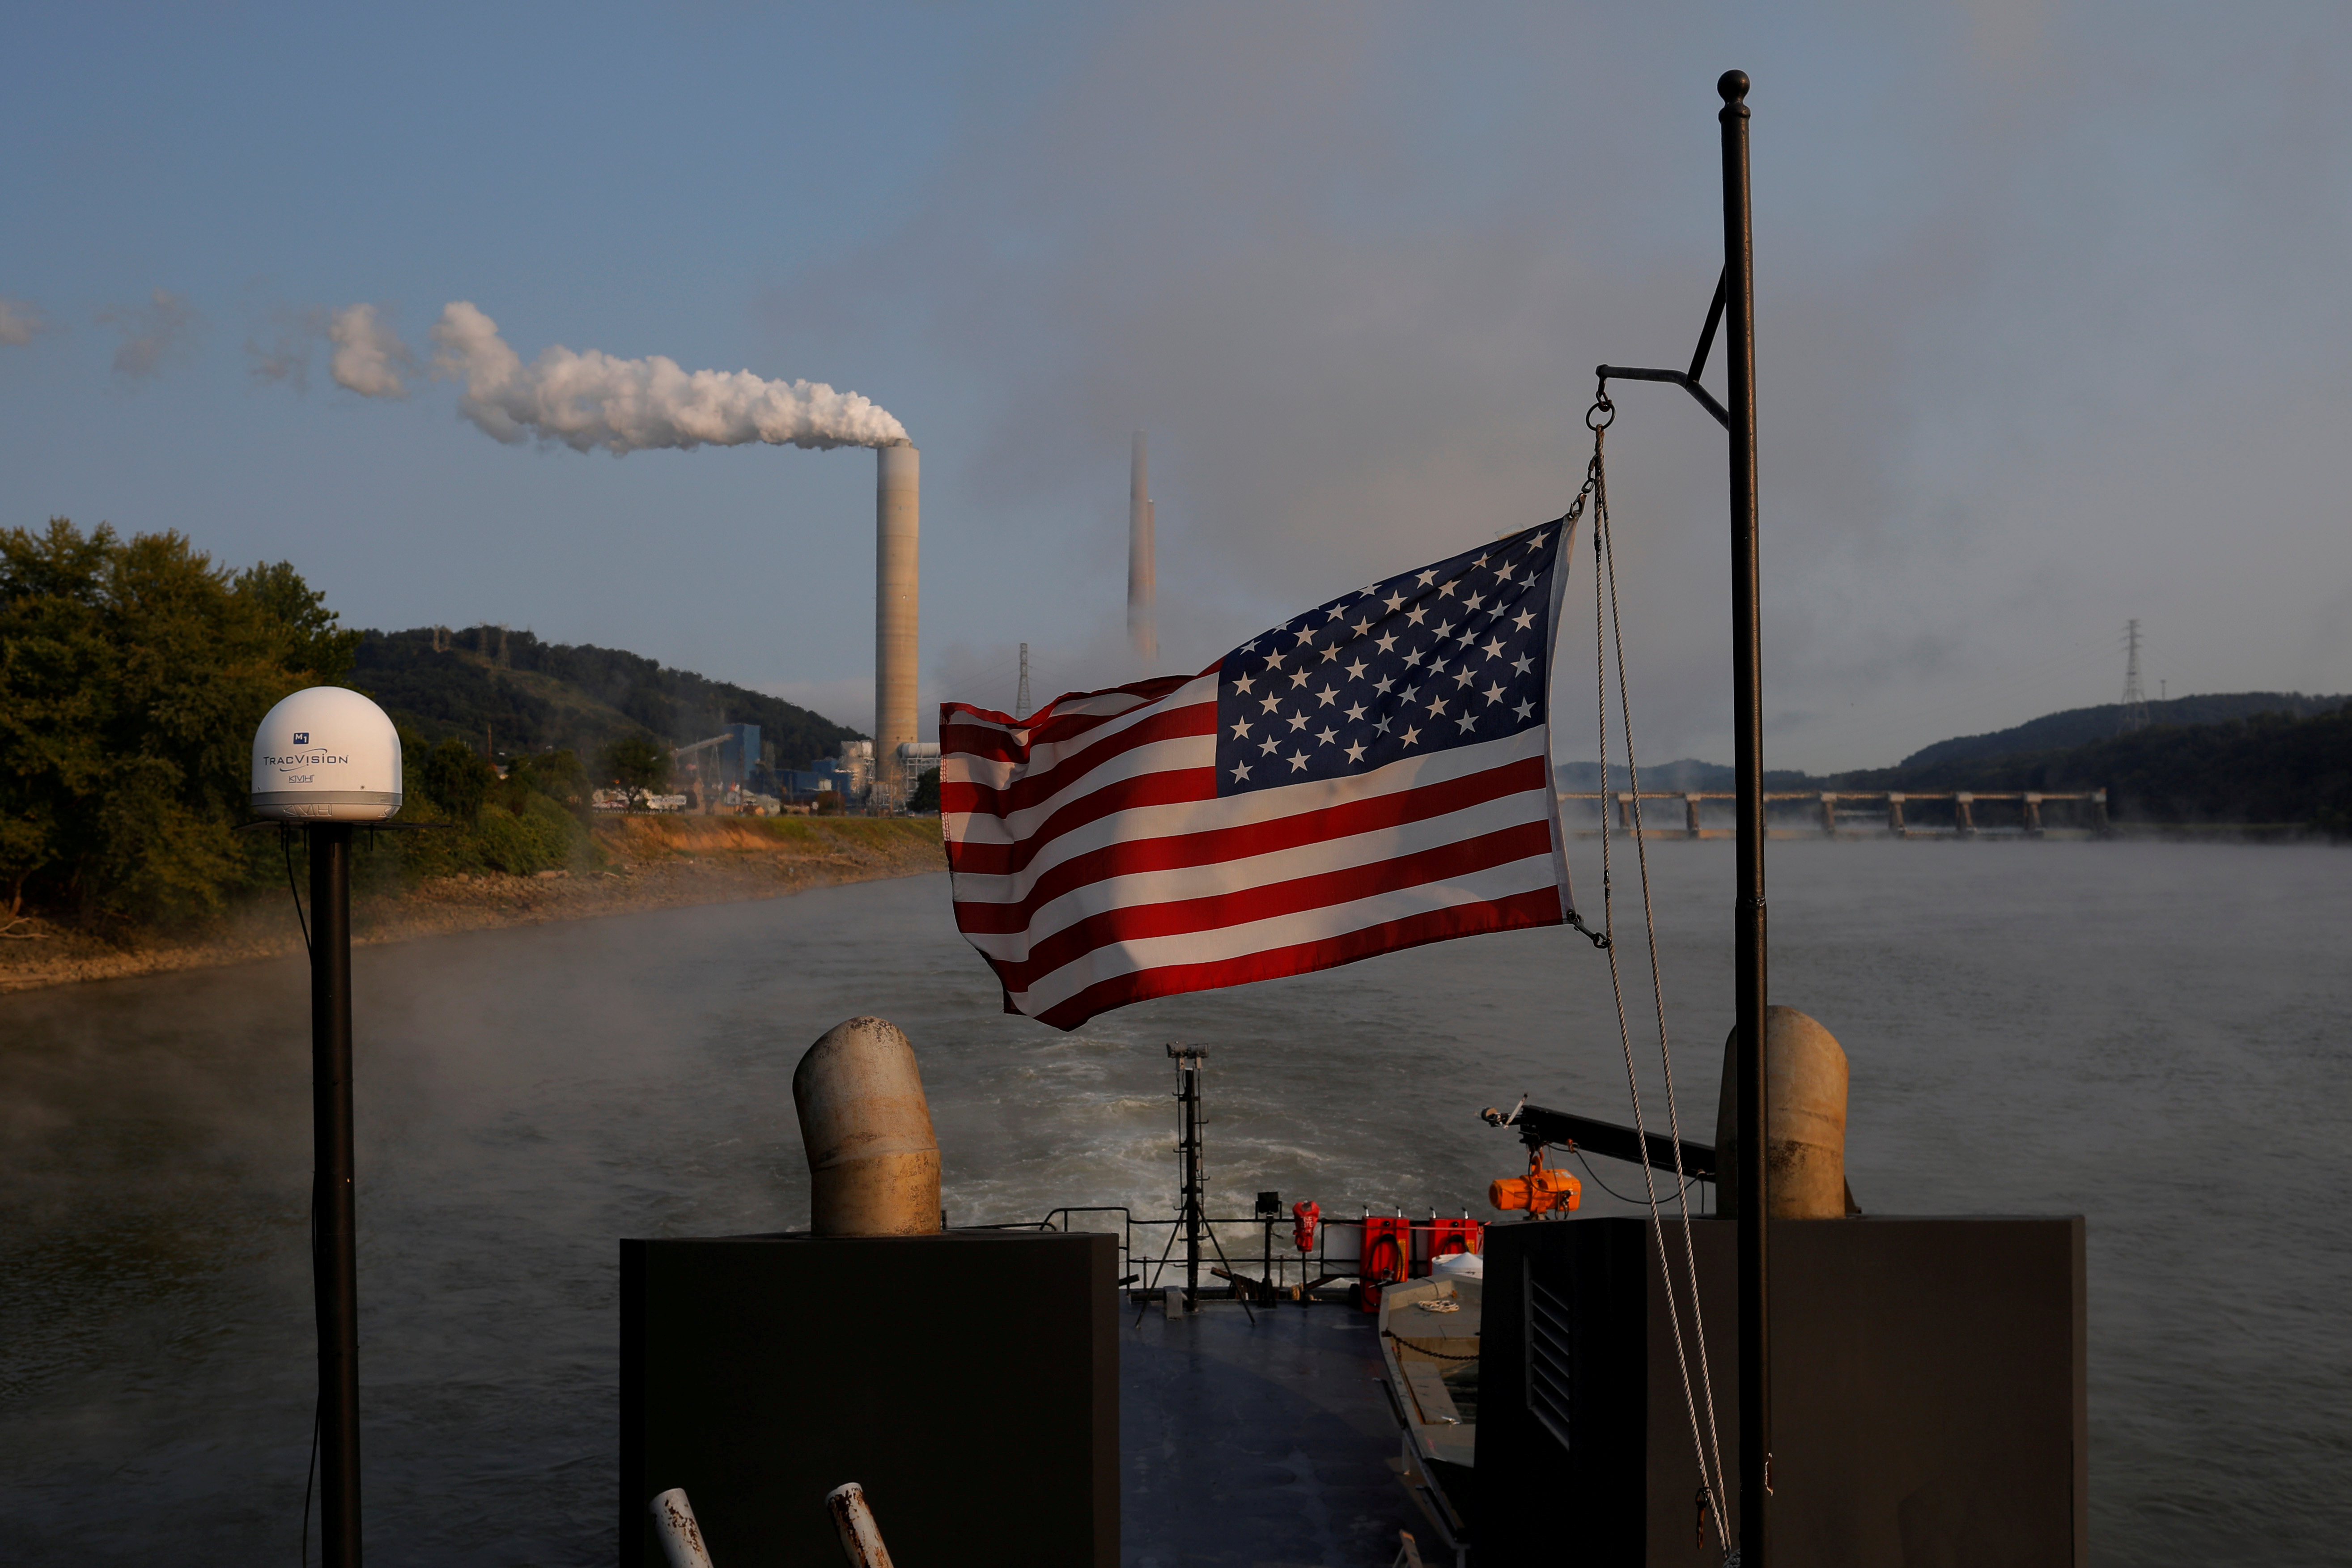 FILE PHOTO: The U.S. flag flies on Campbell Transportation's towboat M.K. McNally as it passes the W. H. Sammis Power Plant along the Ohio River in Stratton